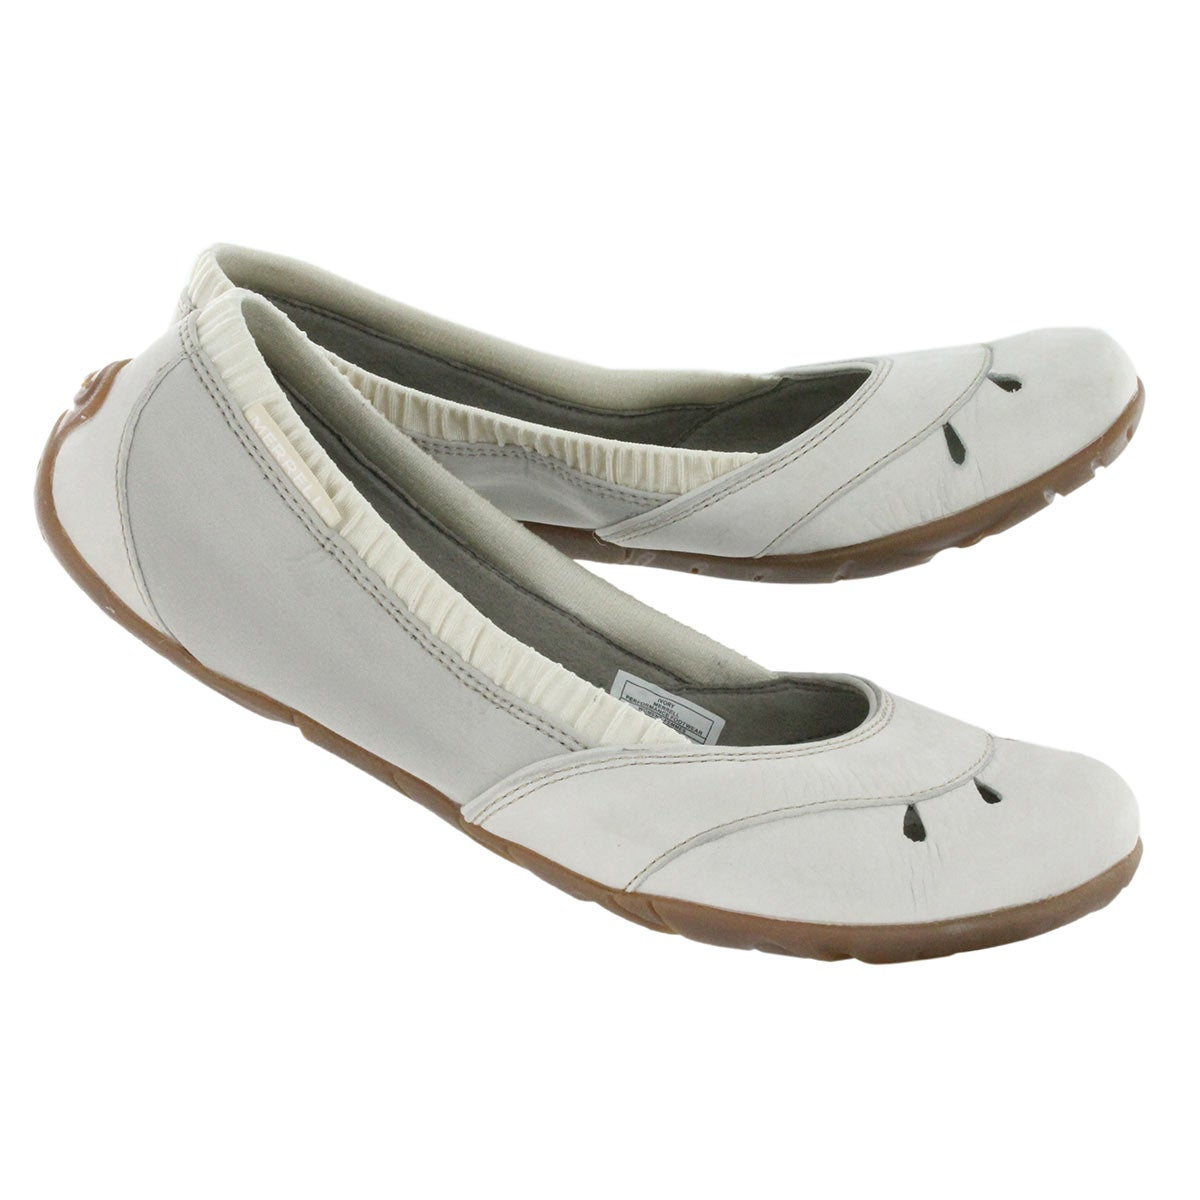 Lds Whirl Glove ivory slip on shoe